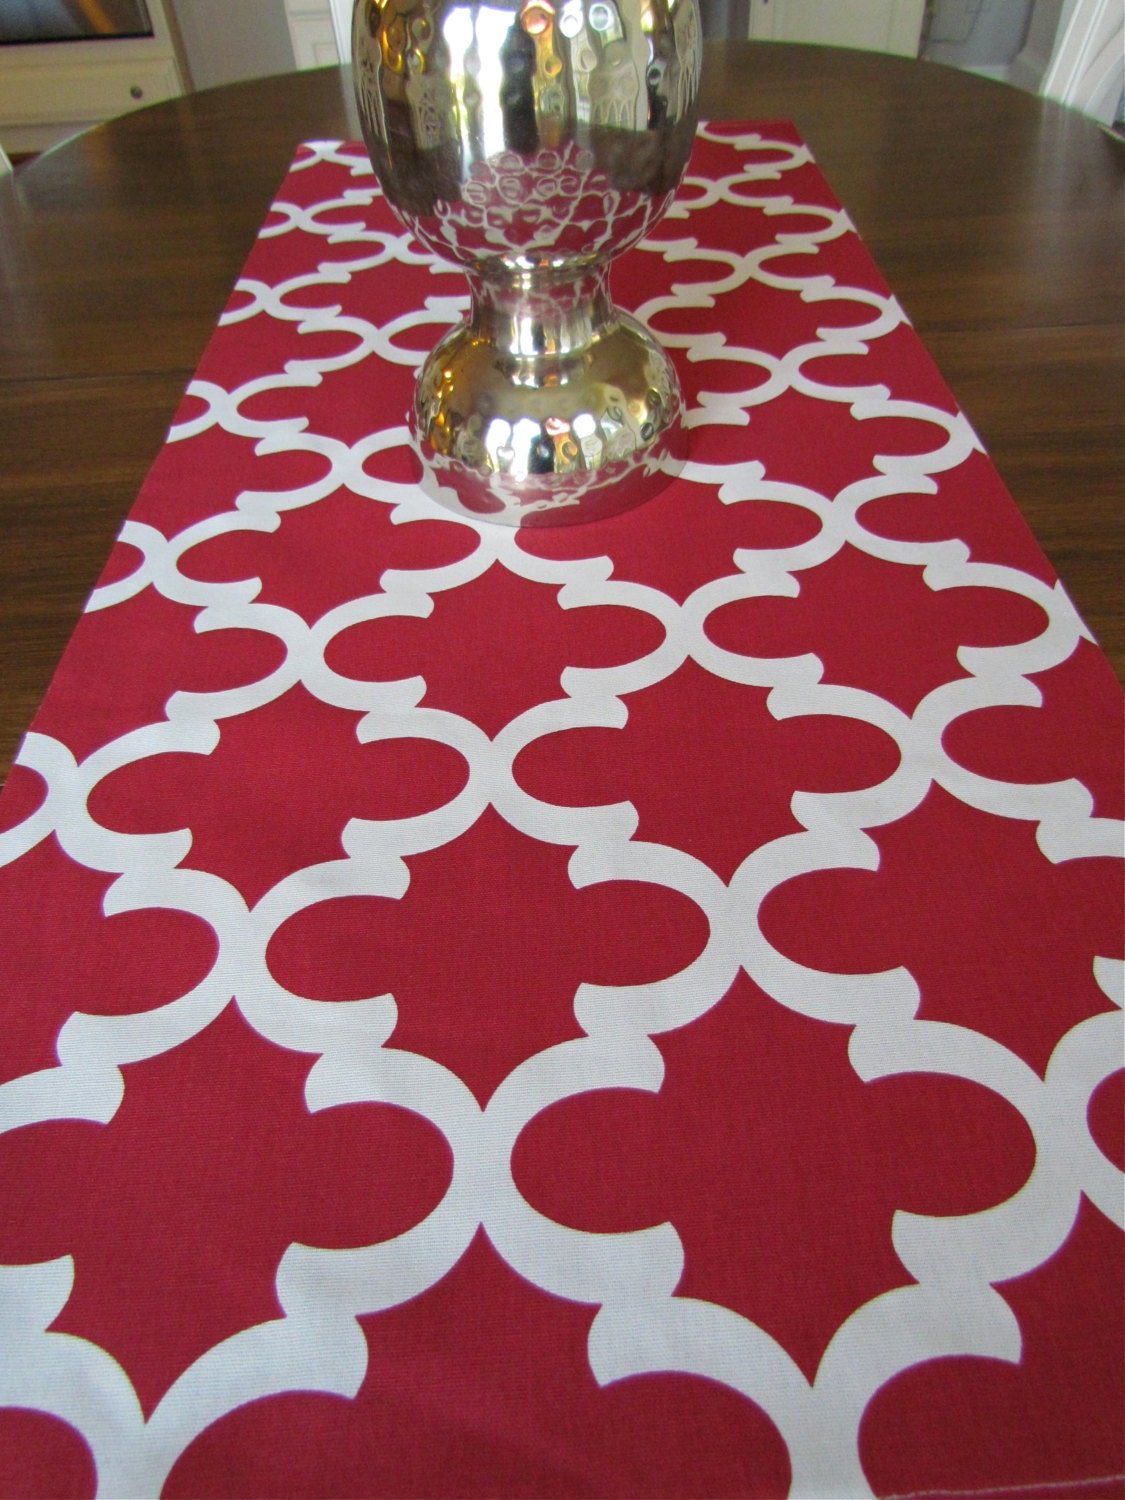 red table runner 12 x 48 red table runners christmas. Black Bedroom Furniture Sets. Home Design Ideas